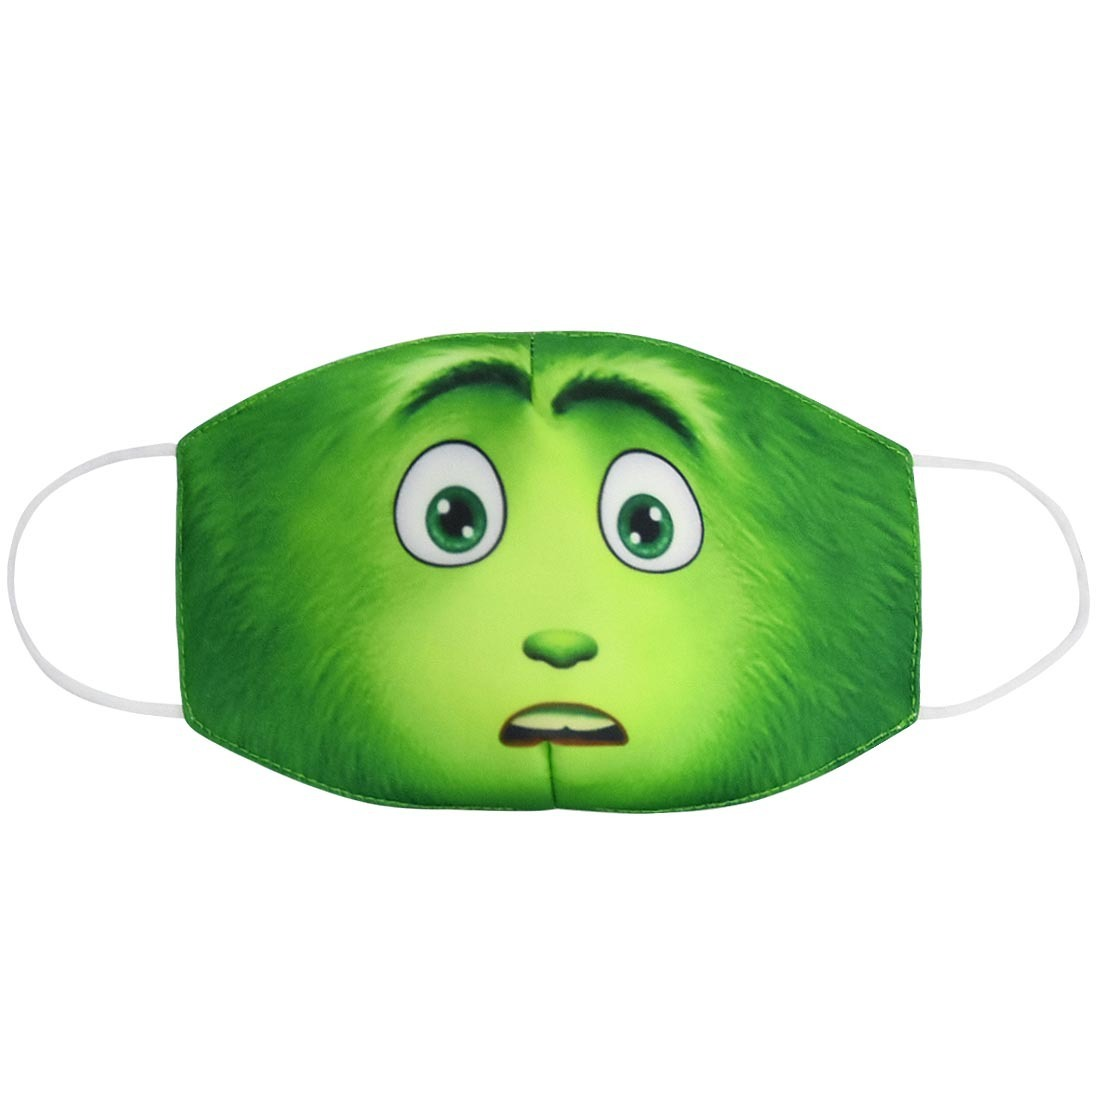 Unisex Cute Cartoon Cotton Face Mouth Printed Mask For Adult And Kids 3